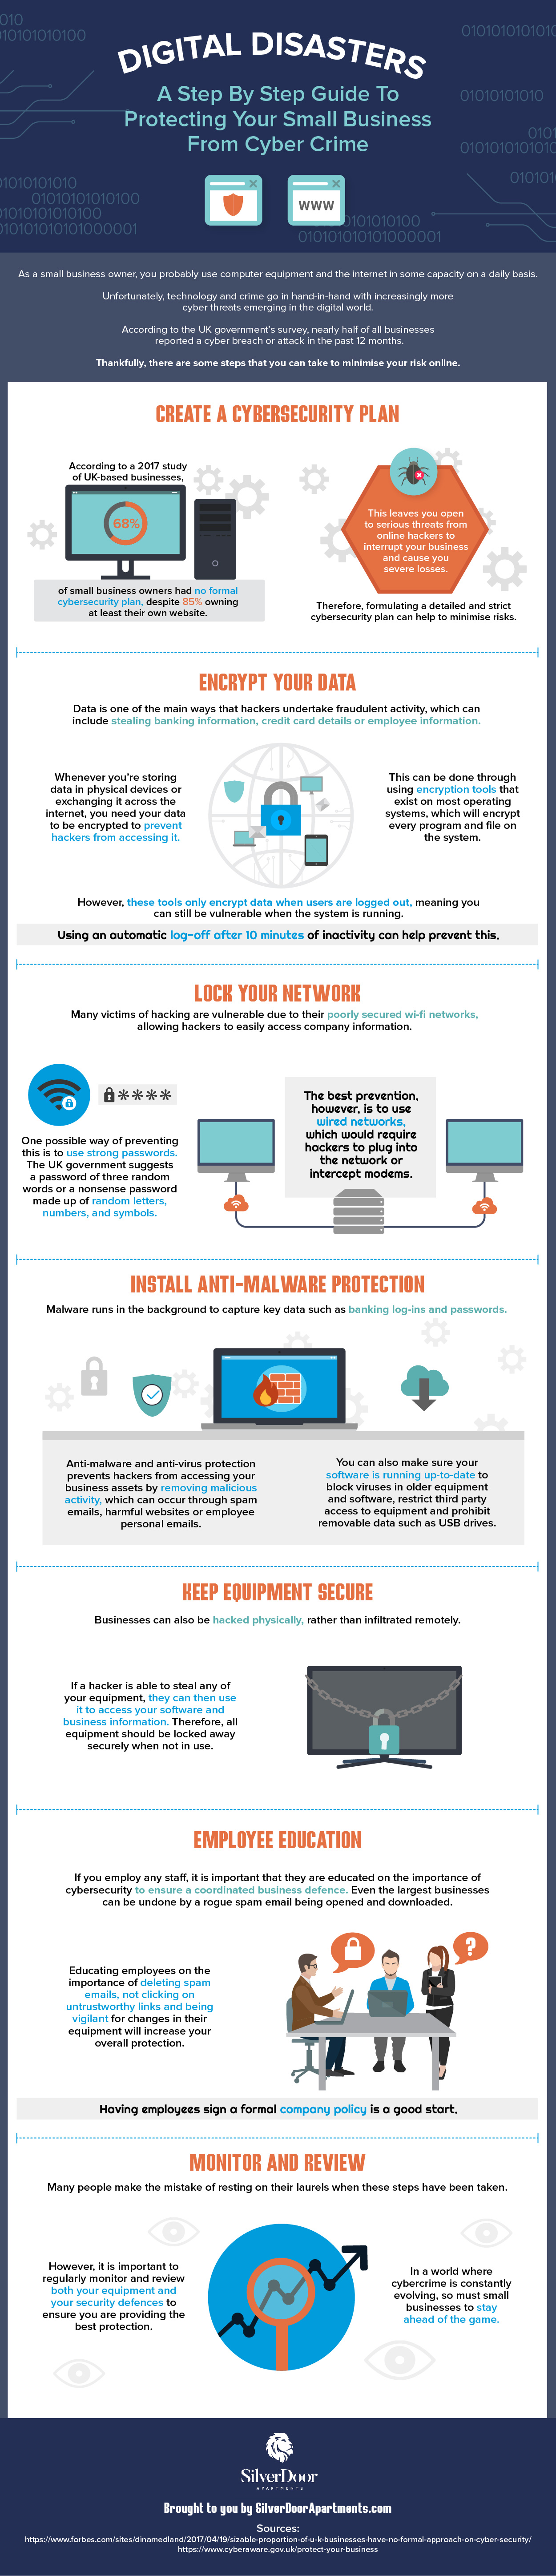 Step By Step Guide To Protecting Your Small Business From Cyber Crime [Infographic]